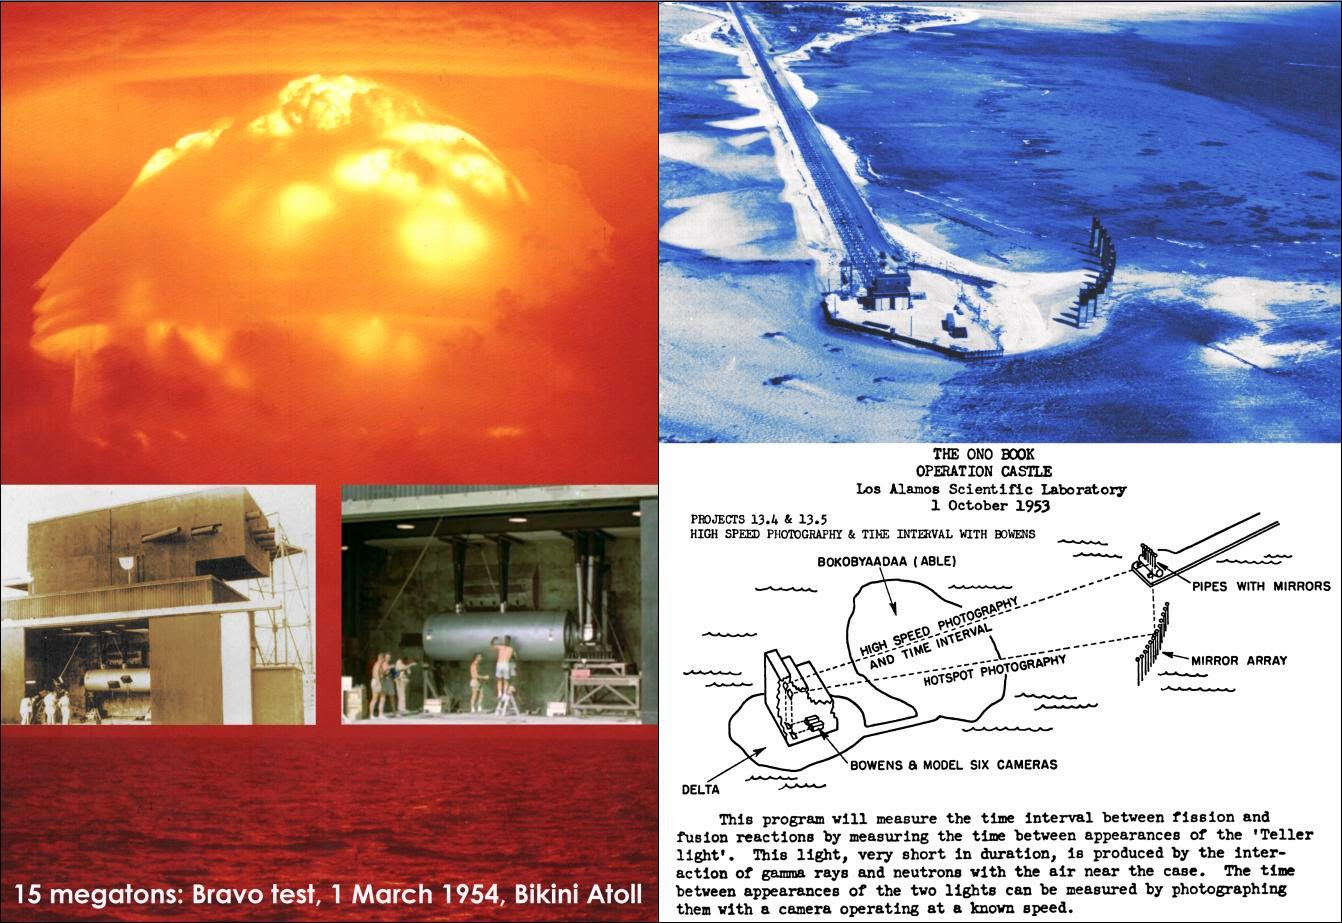 nuclear testing essay The impact of nuclear testing on the australian environment essay by nuclear testing on the australian environment com/essay/impact-nuclear-testing.